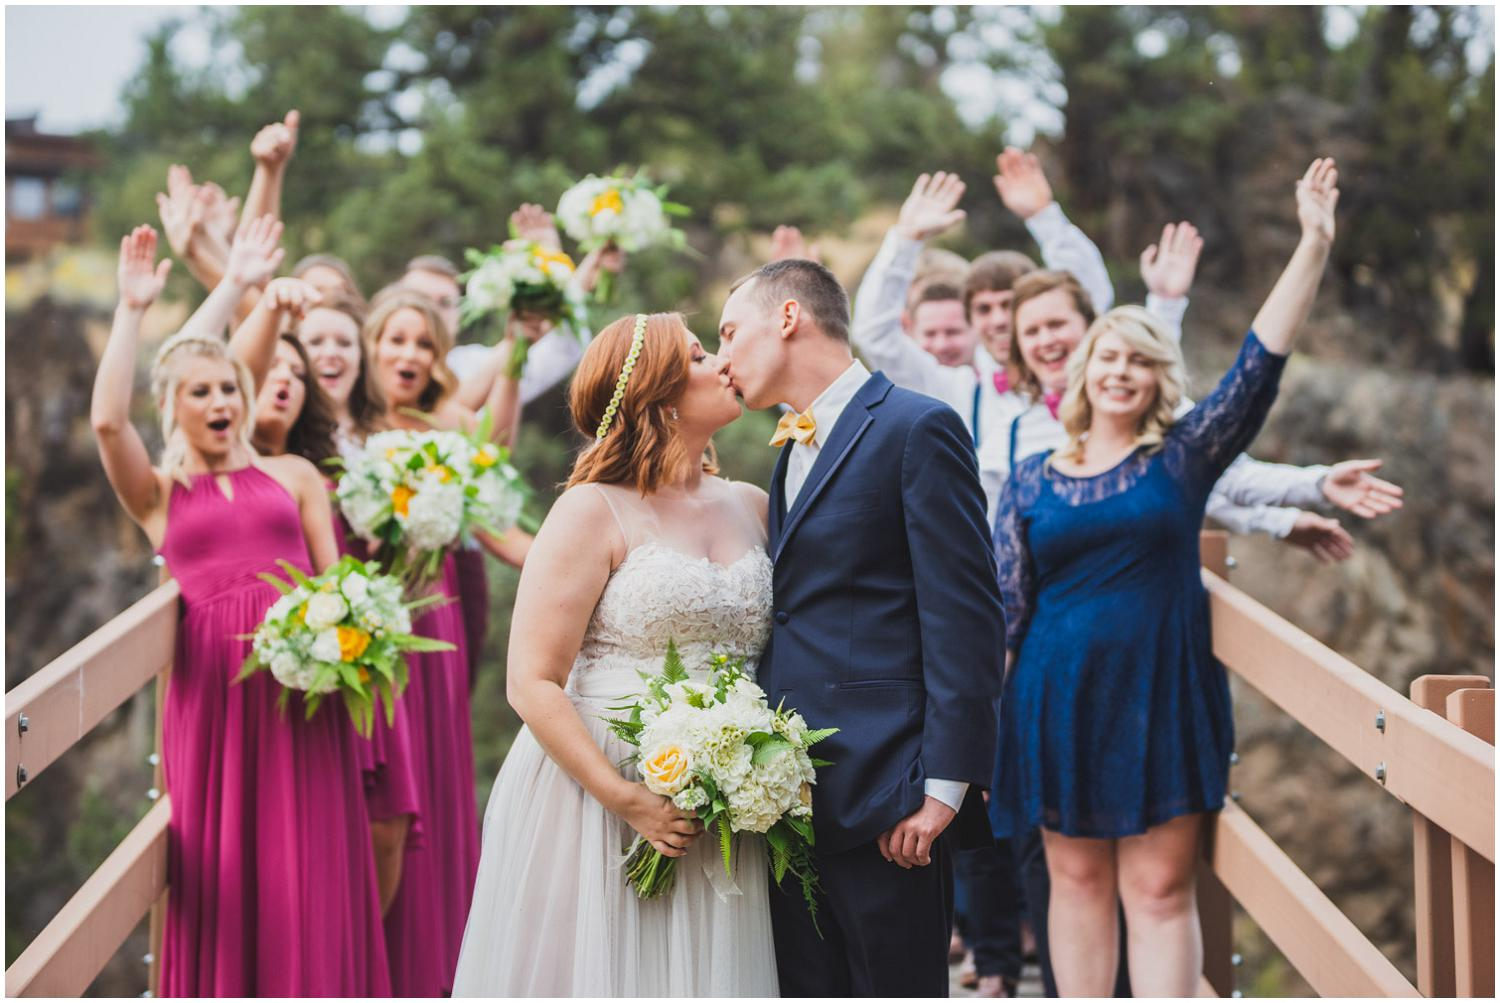 bride and groom kissing on bridge with wedding party cheering behind them